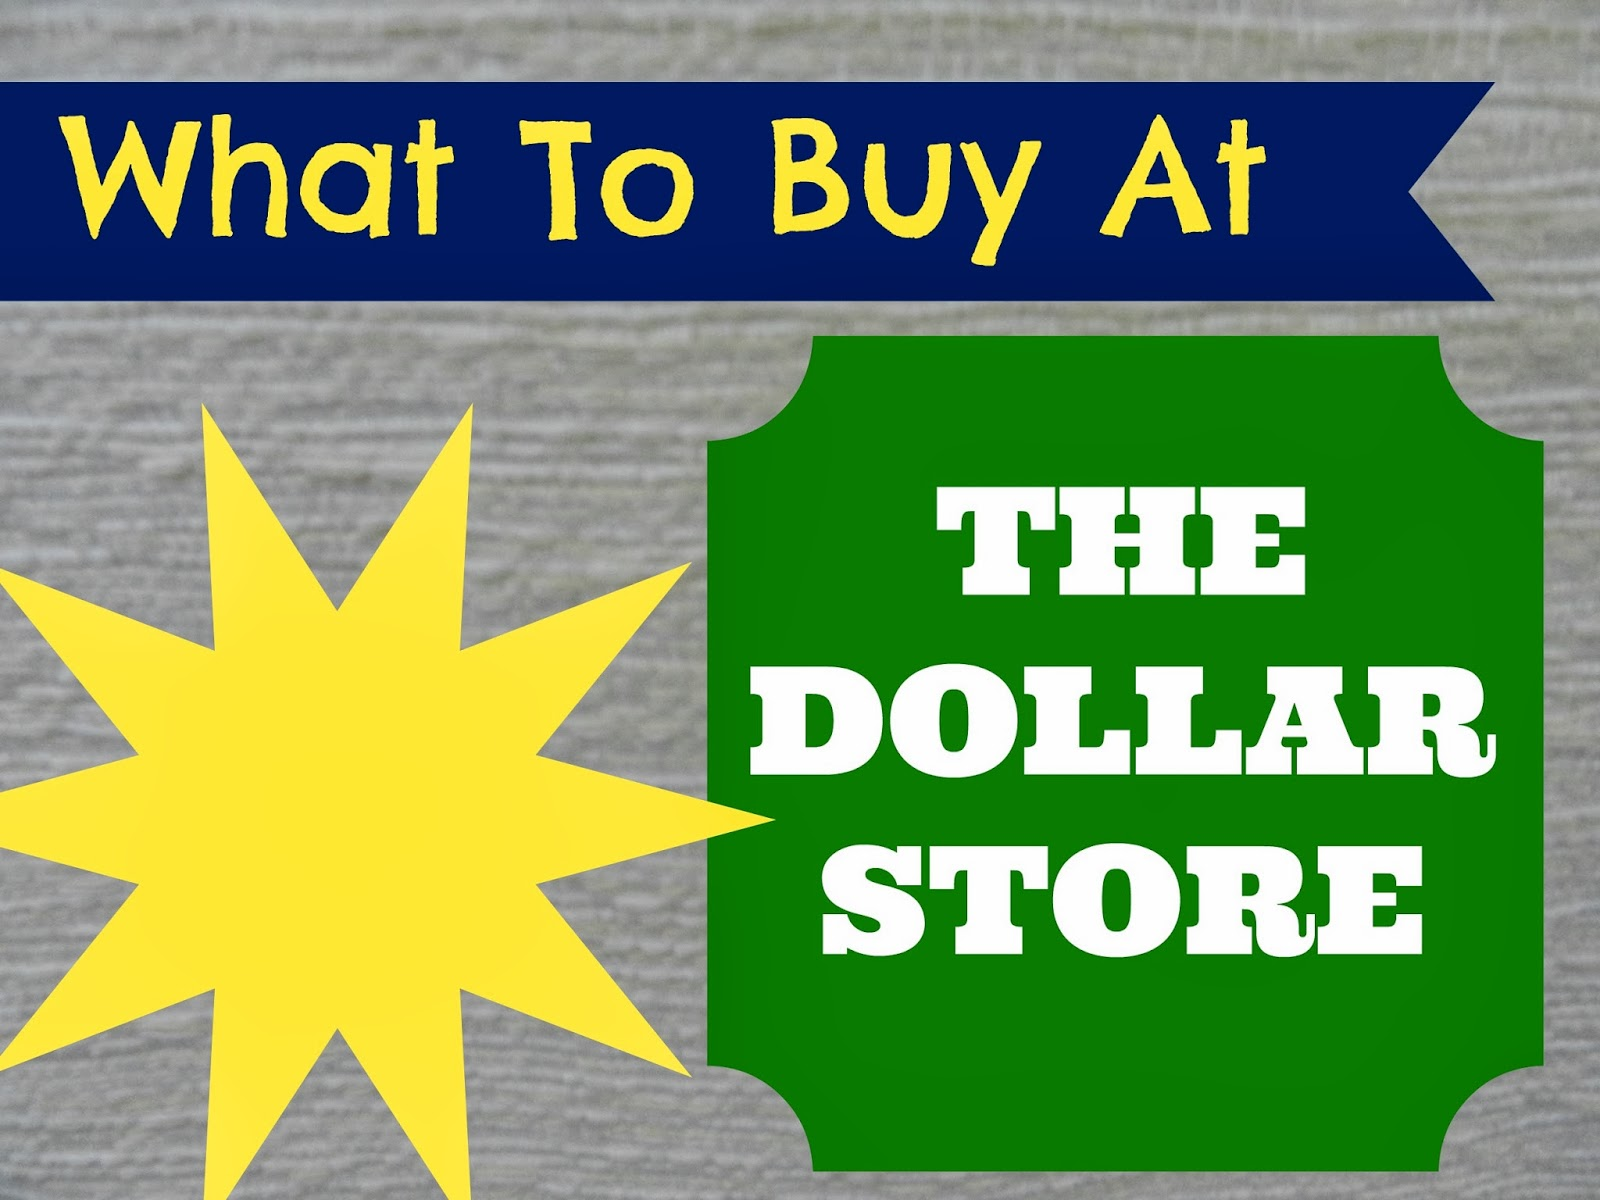 25 Dollar Store Items Worth Buying